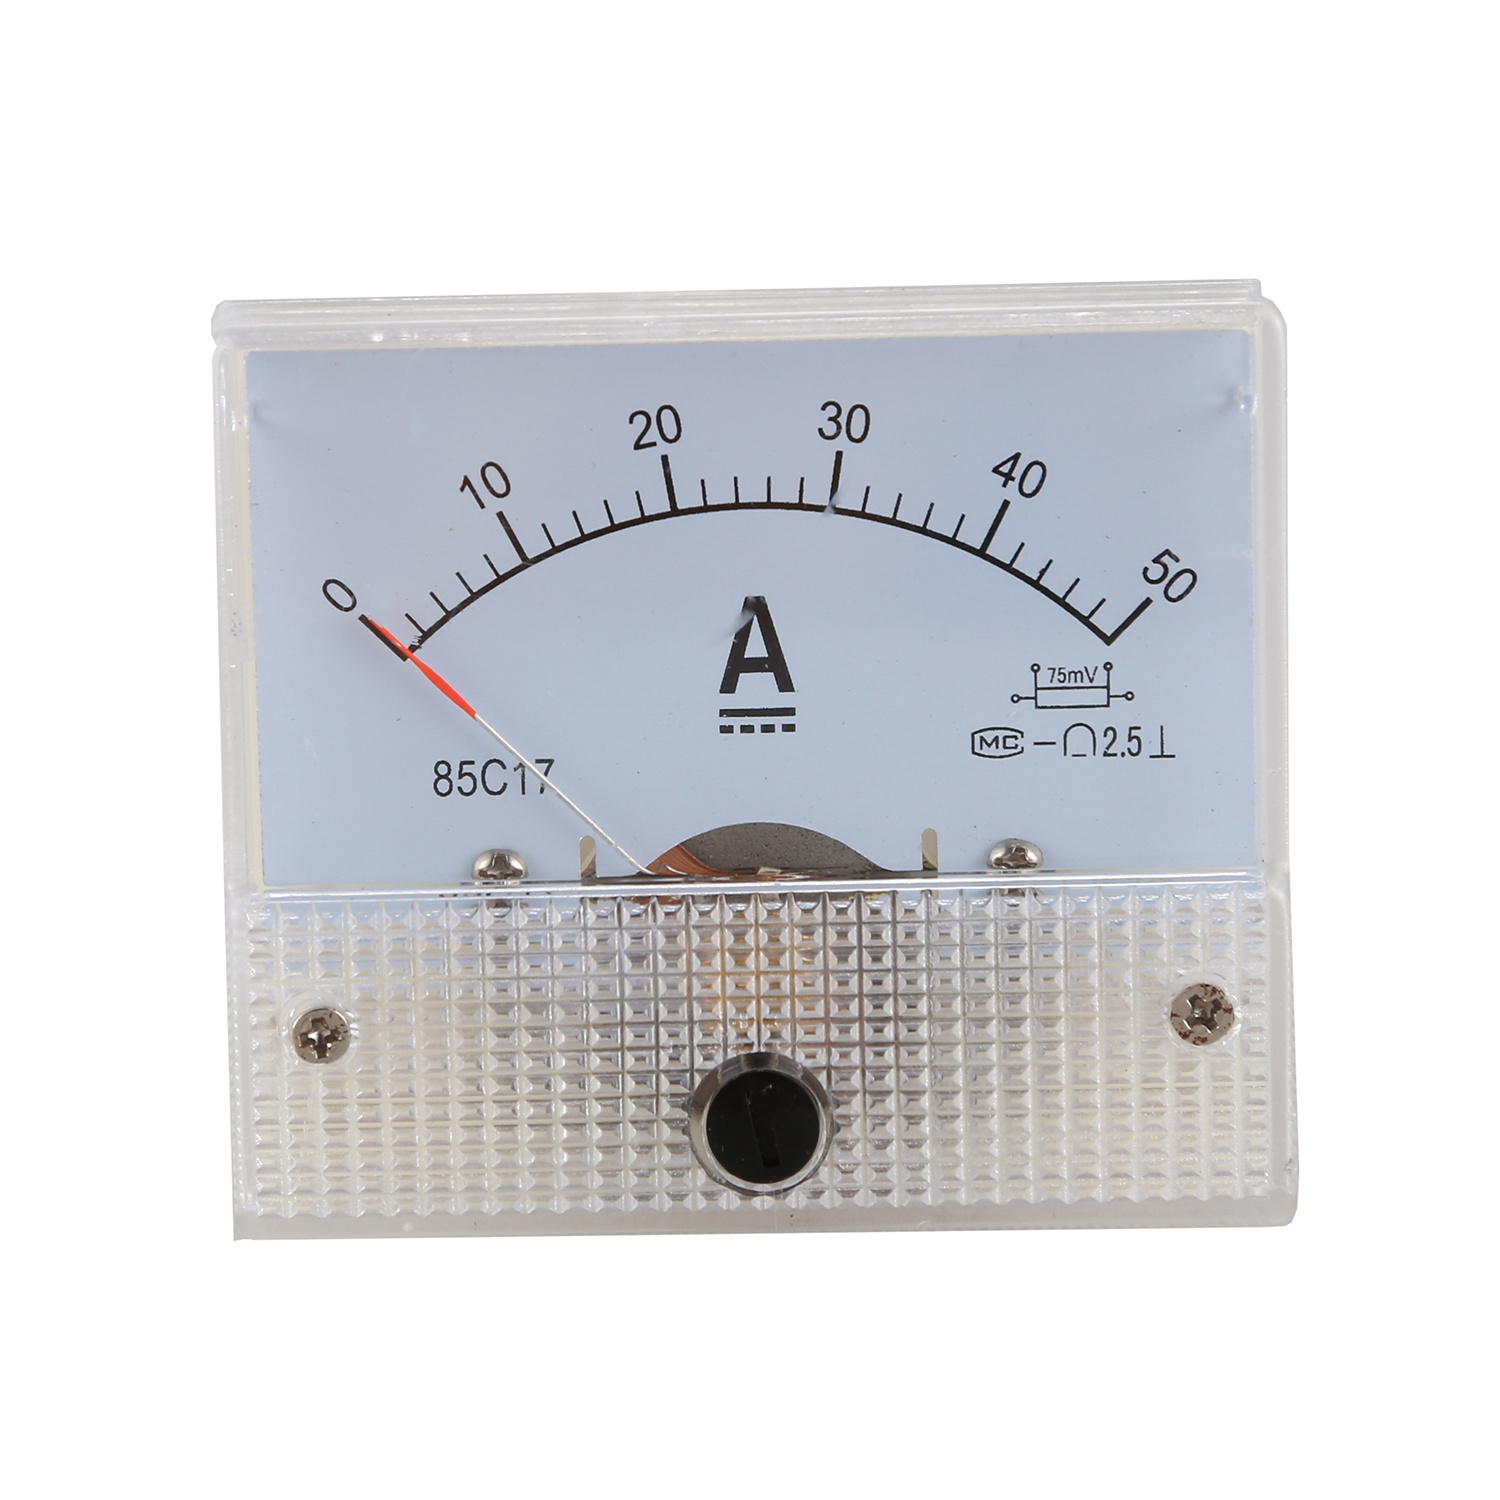 DC 0-50A Analog Amp Meter Ammeter Current Panel + 50A 75mV Shunt Resistor